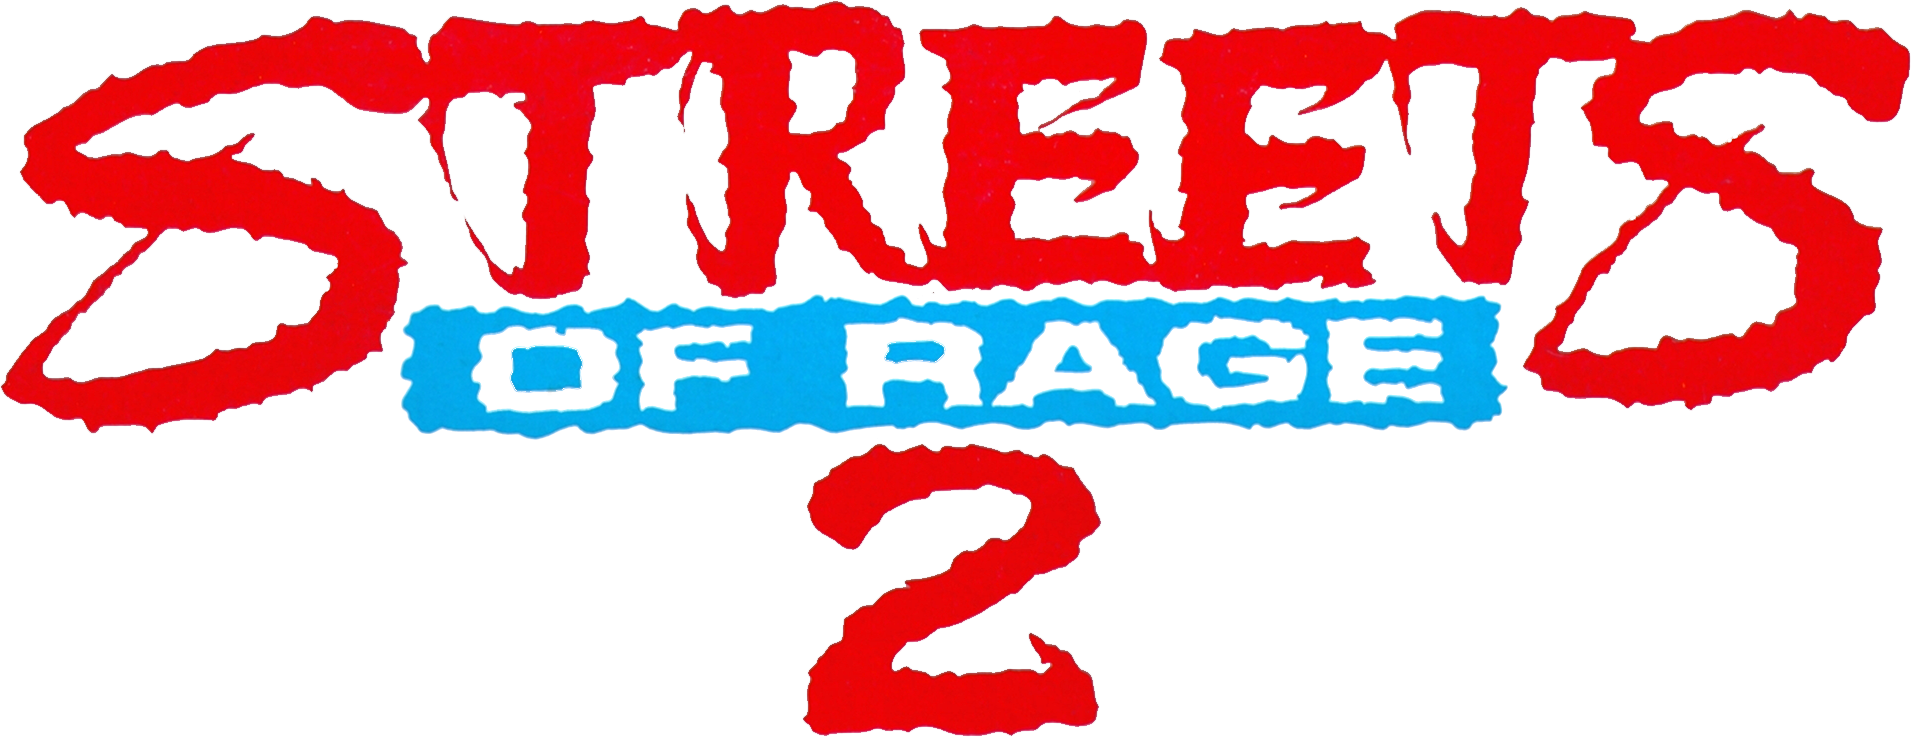 Streets of rage 2 logo png. Details launchbox games database